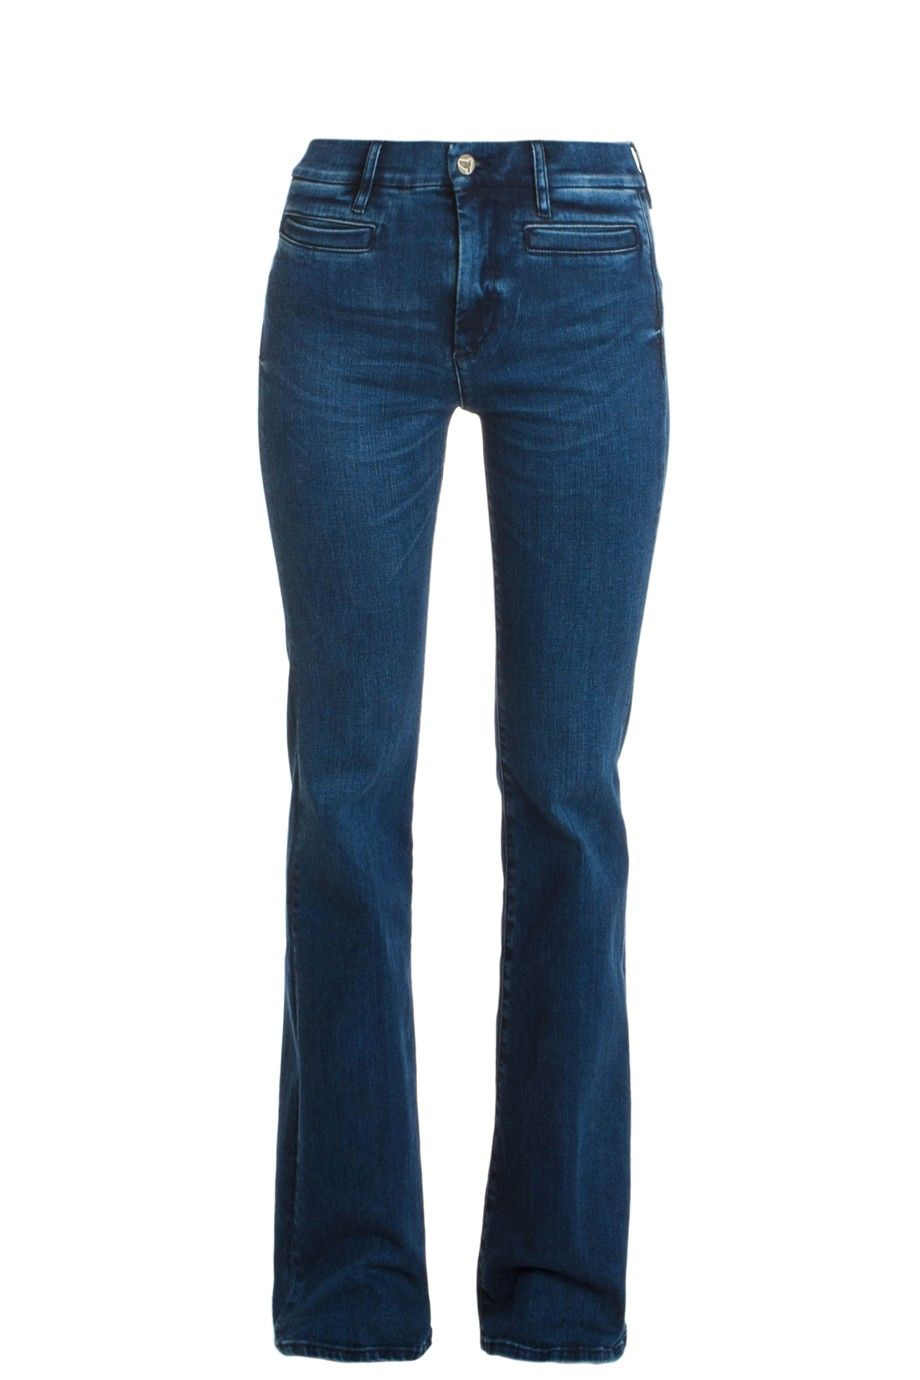 Marrakesh Flared Jeans By MiH JEANS @ http://www.boutique1.com/